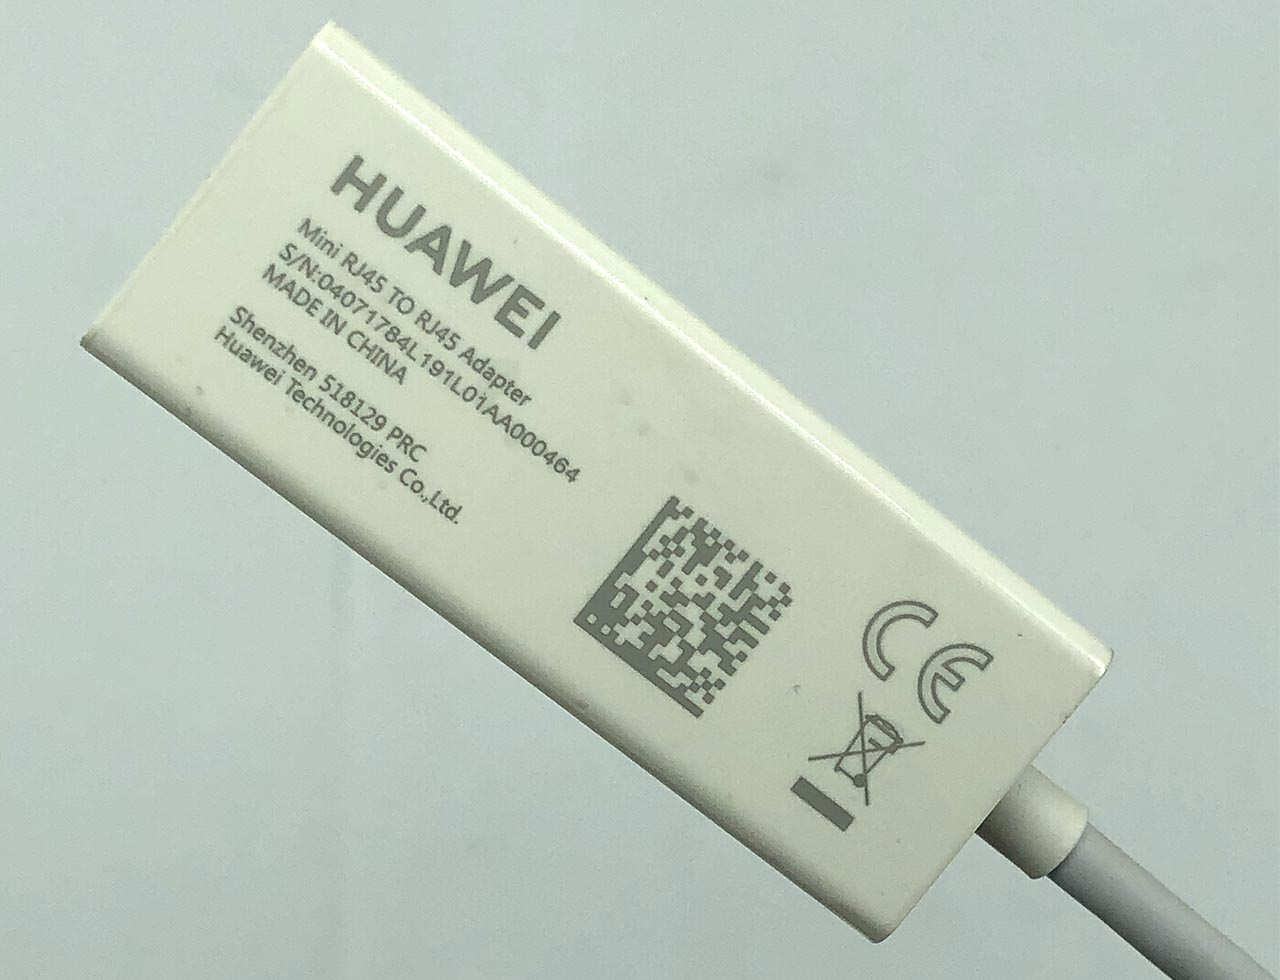 华为迷你千兆网卡拆解教程 Mini RJ45 TO RJ45 Adapter 10/100/1000 Mbps Gigabit Ethernet HuaWei MateBook B3-410 B3-510 B5-420